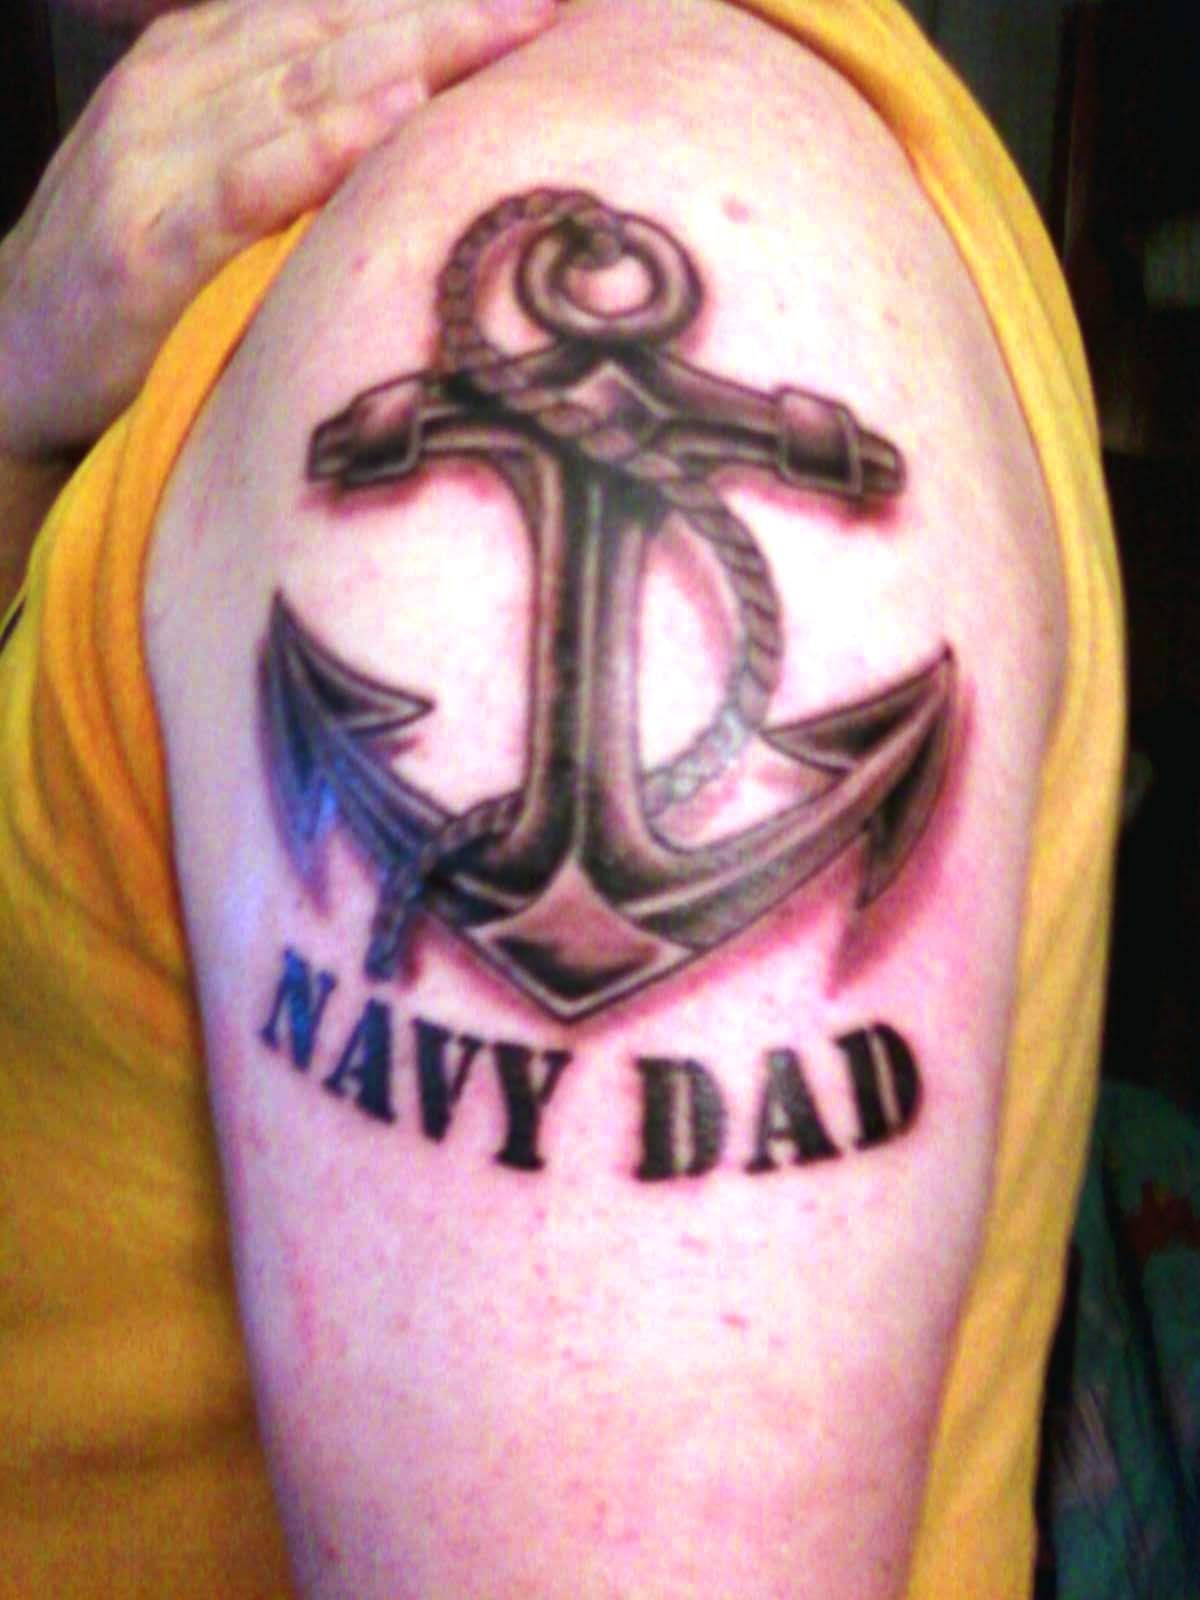 Navy dad dad pinterest navy tattoos meaning tattoos and tattoo navy dad biocorpaavc Image collections